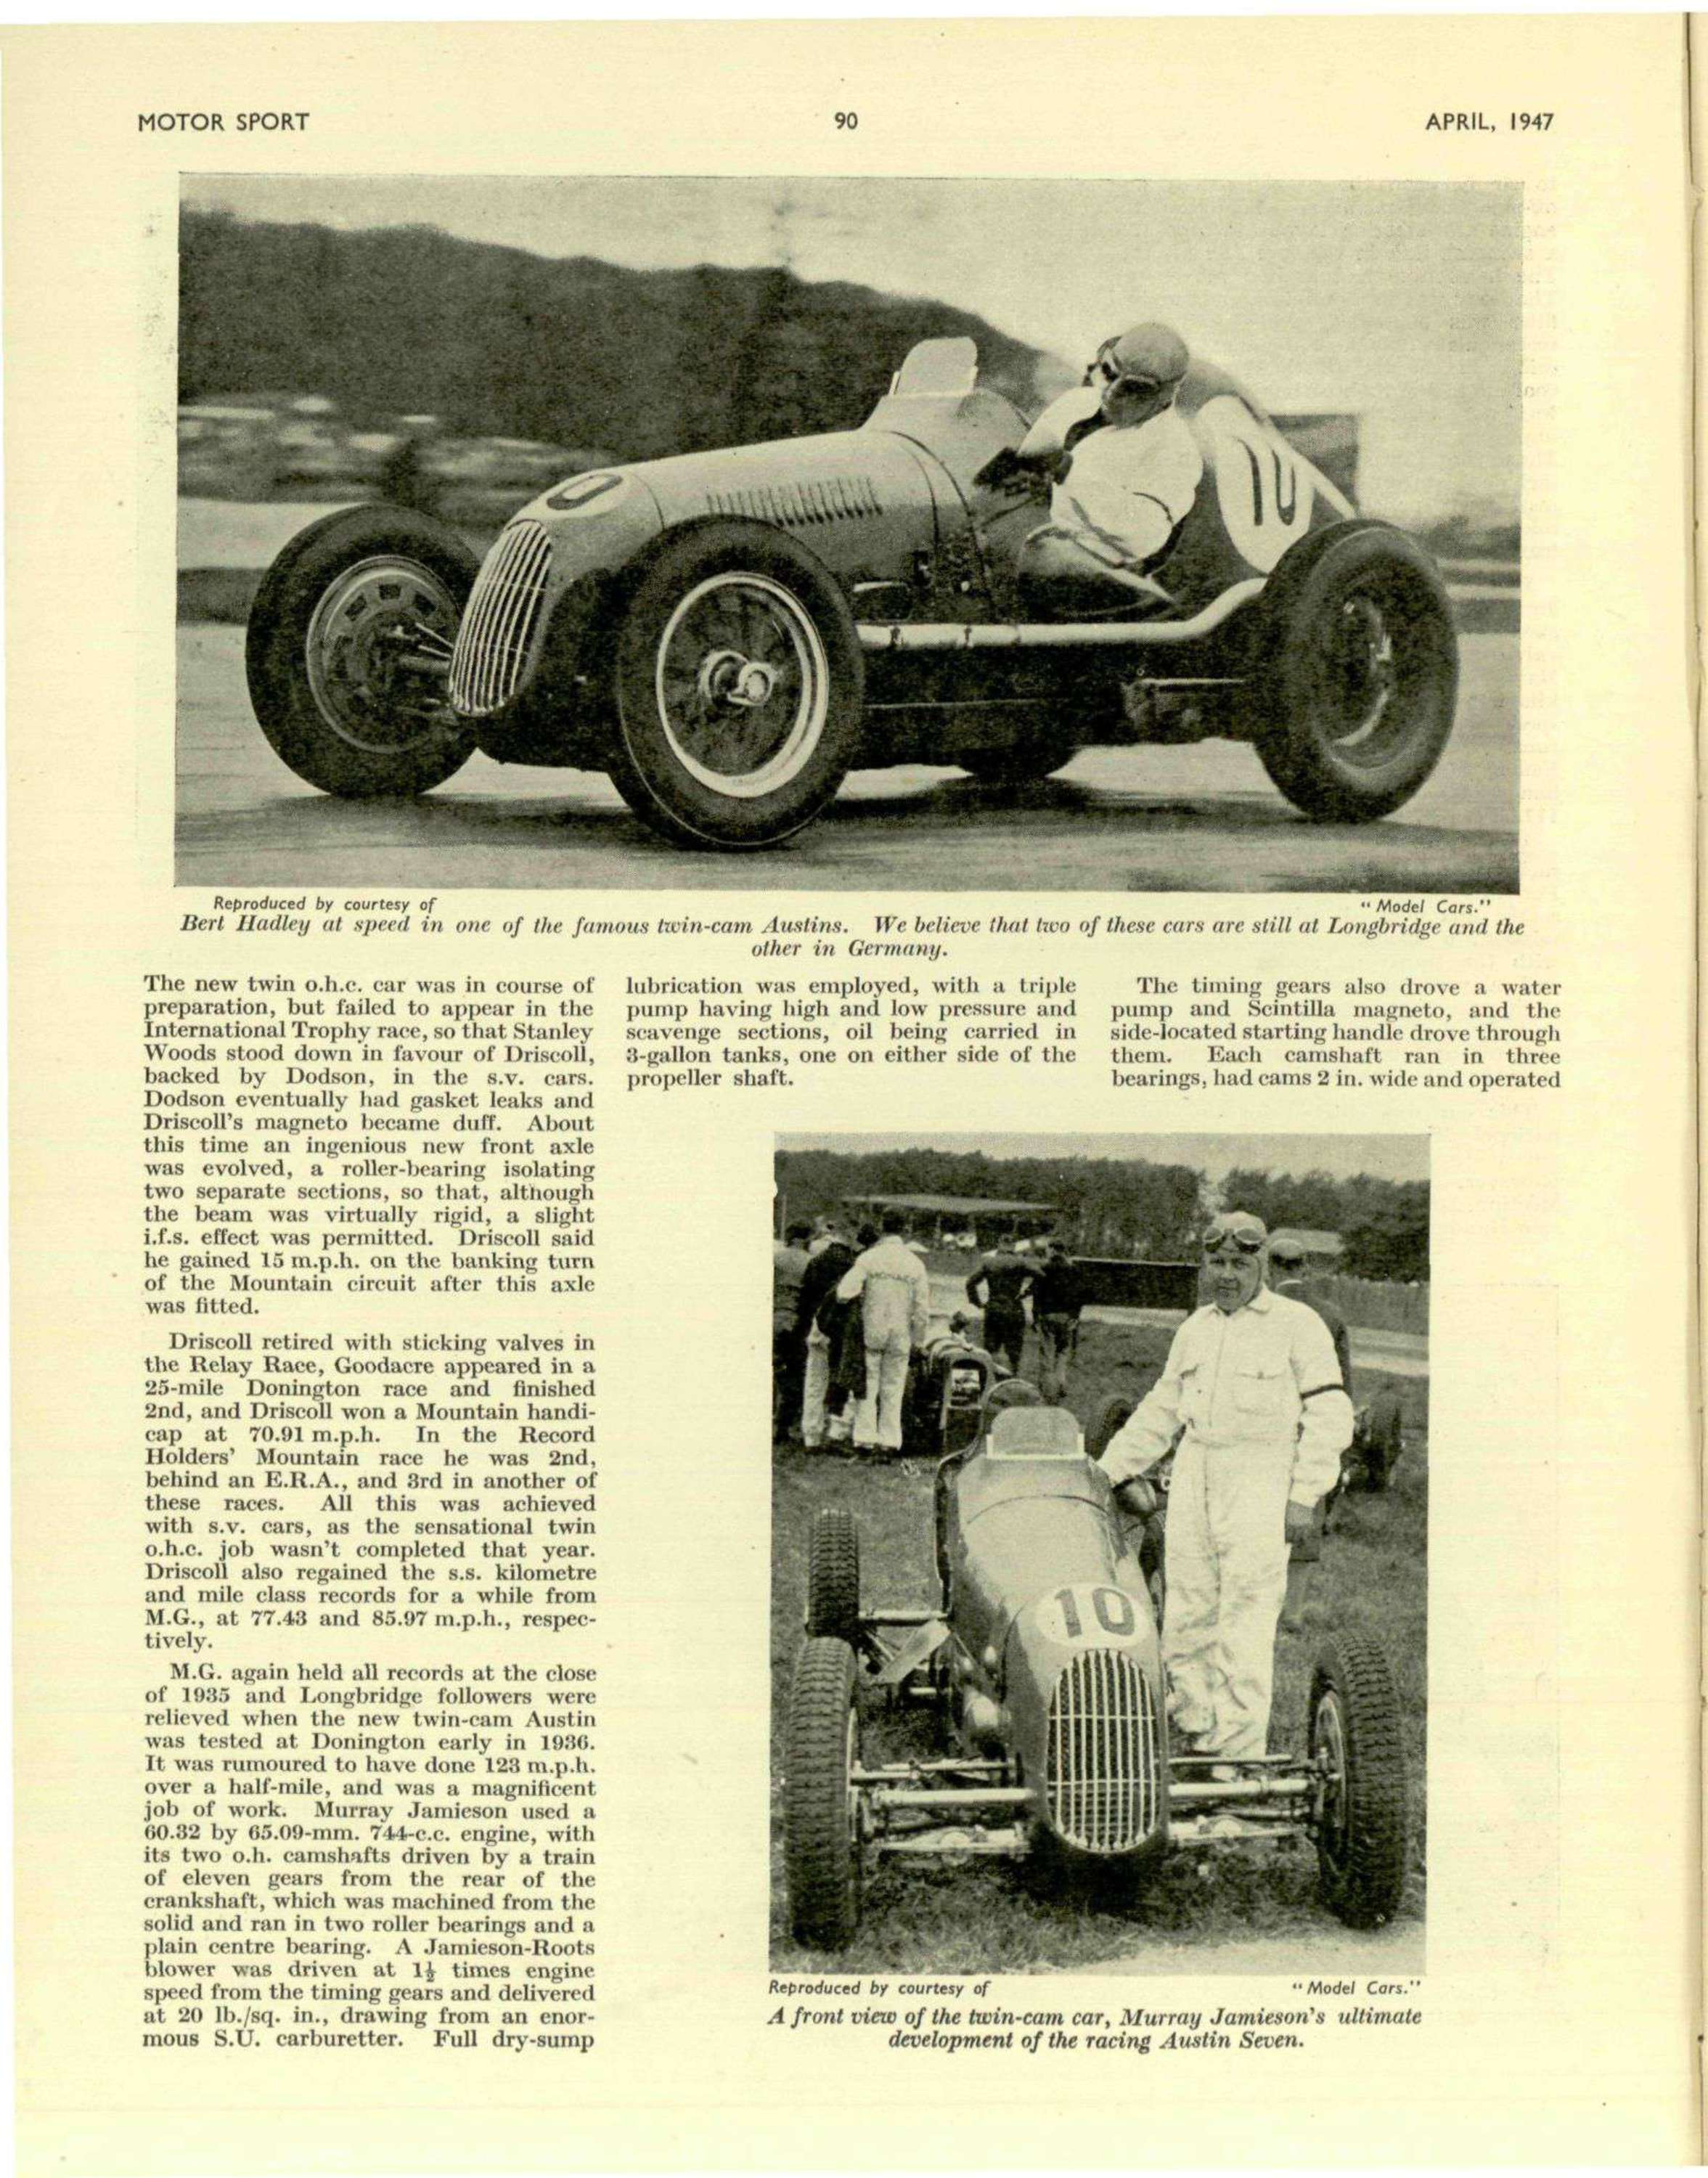 The Development Of The Racing Austin Seven Motor Sport